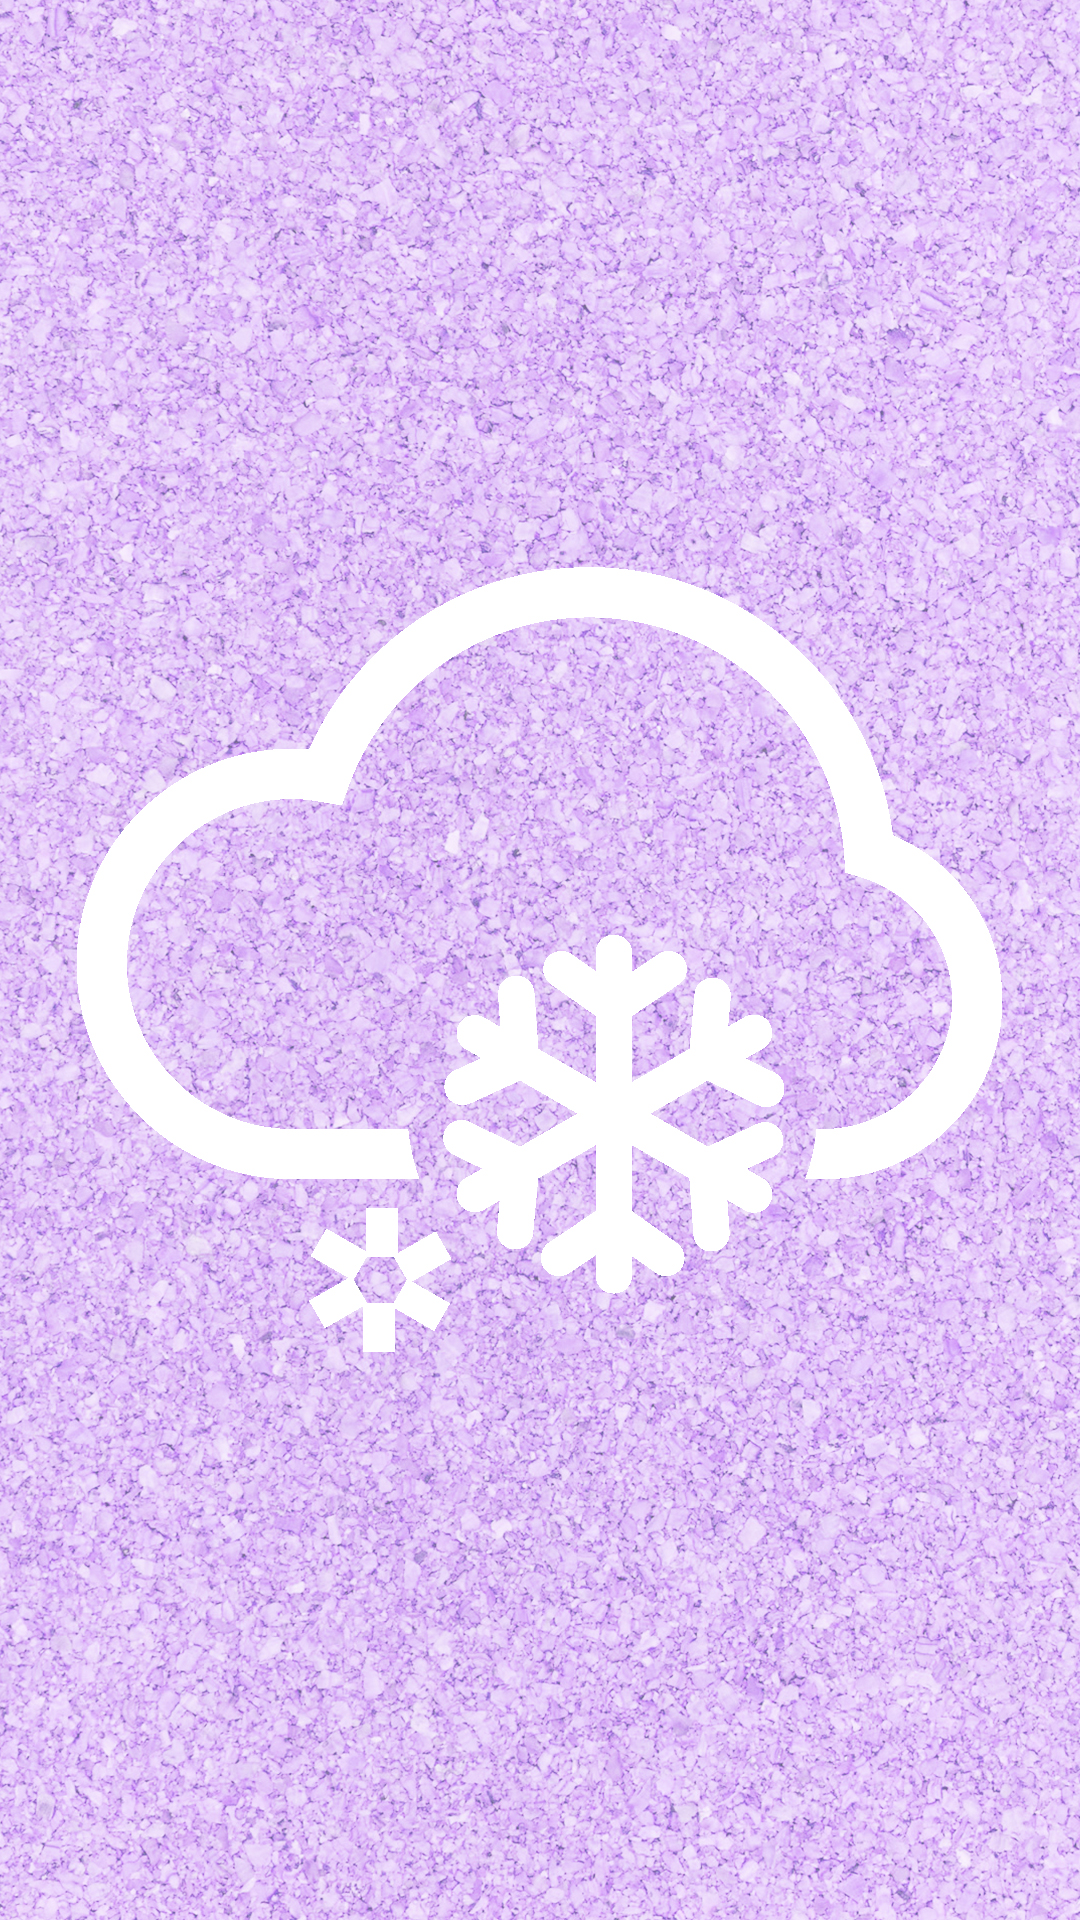 Cloudy weather Purple  wallpaper.sc SmartPhone